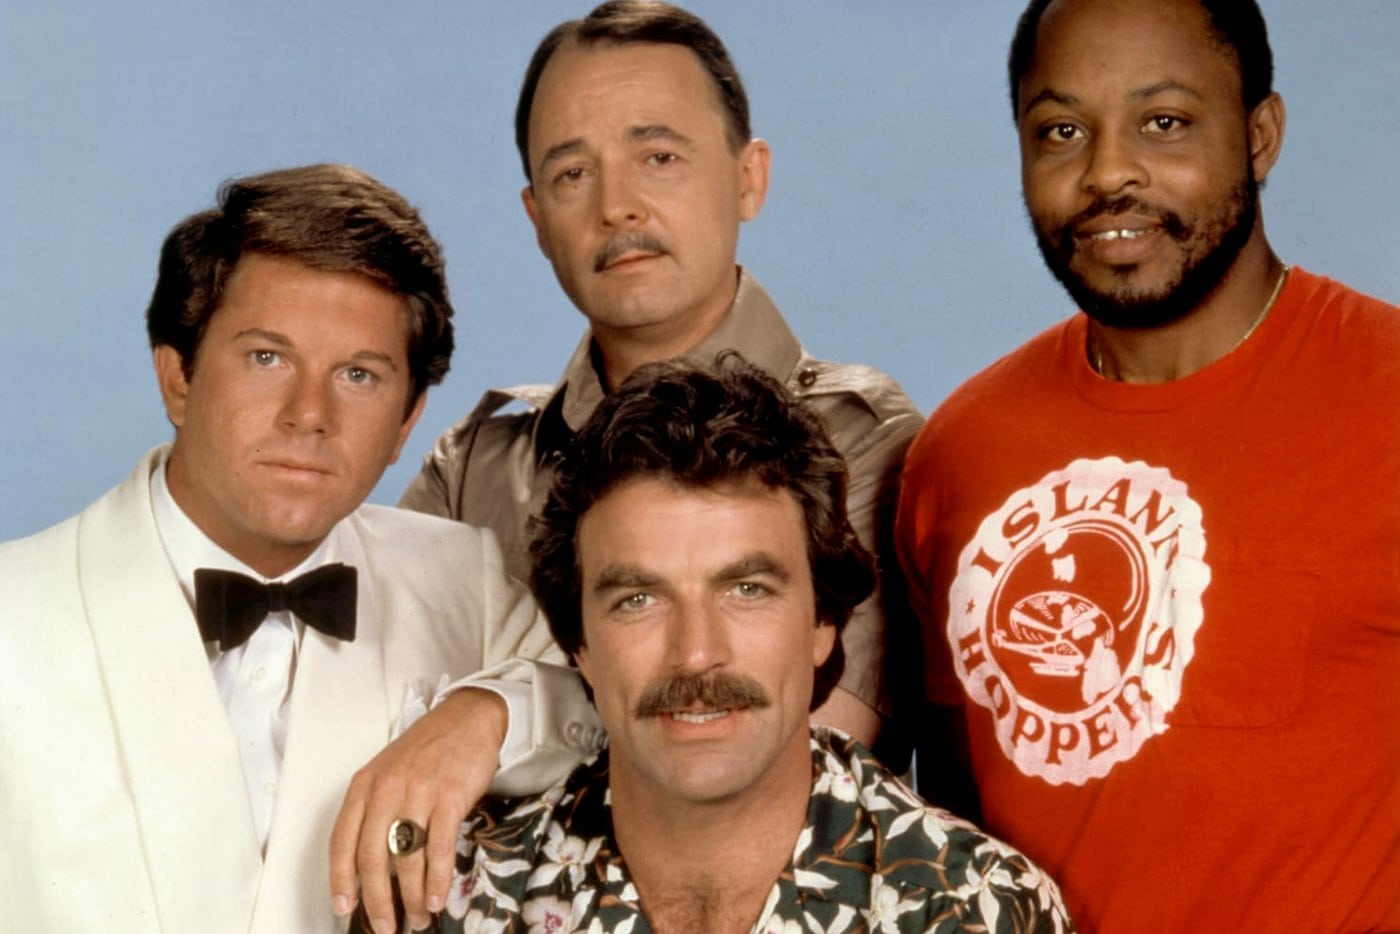 Magnum PI TV show cast in 1983 25 Things You Didn't Know About Magnum, P.I.